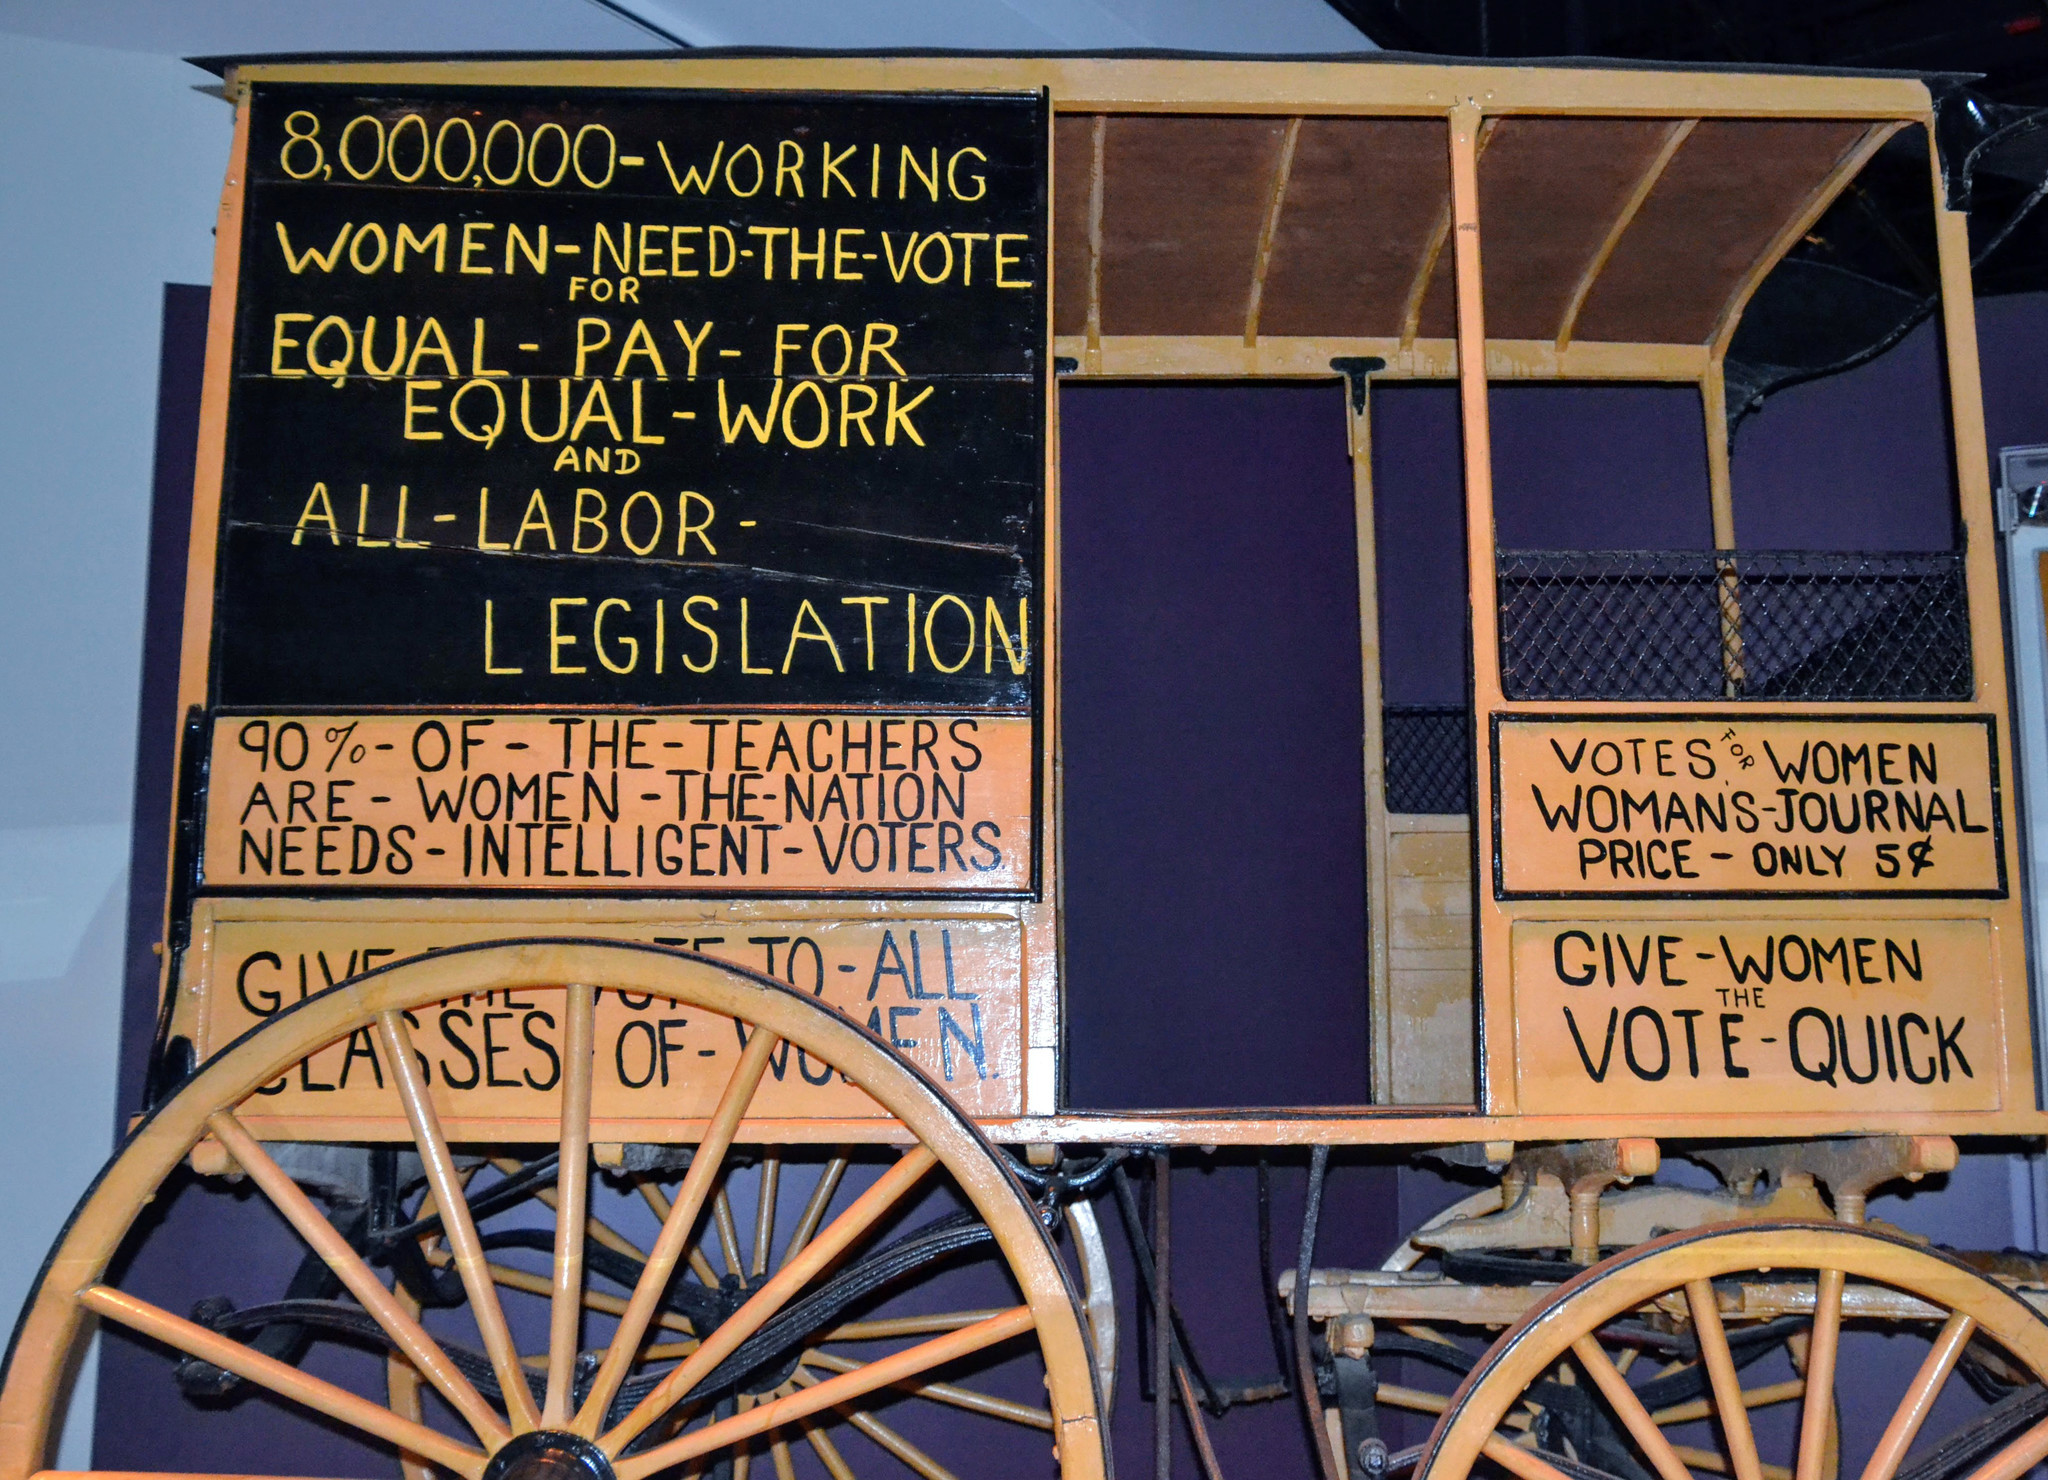 This wagon was used from the 1870s to 1920 in the suffrage movement. It is on display at the National Museum of American History in Washington, D.C.